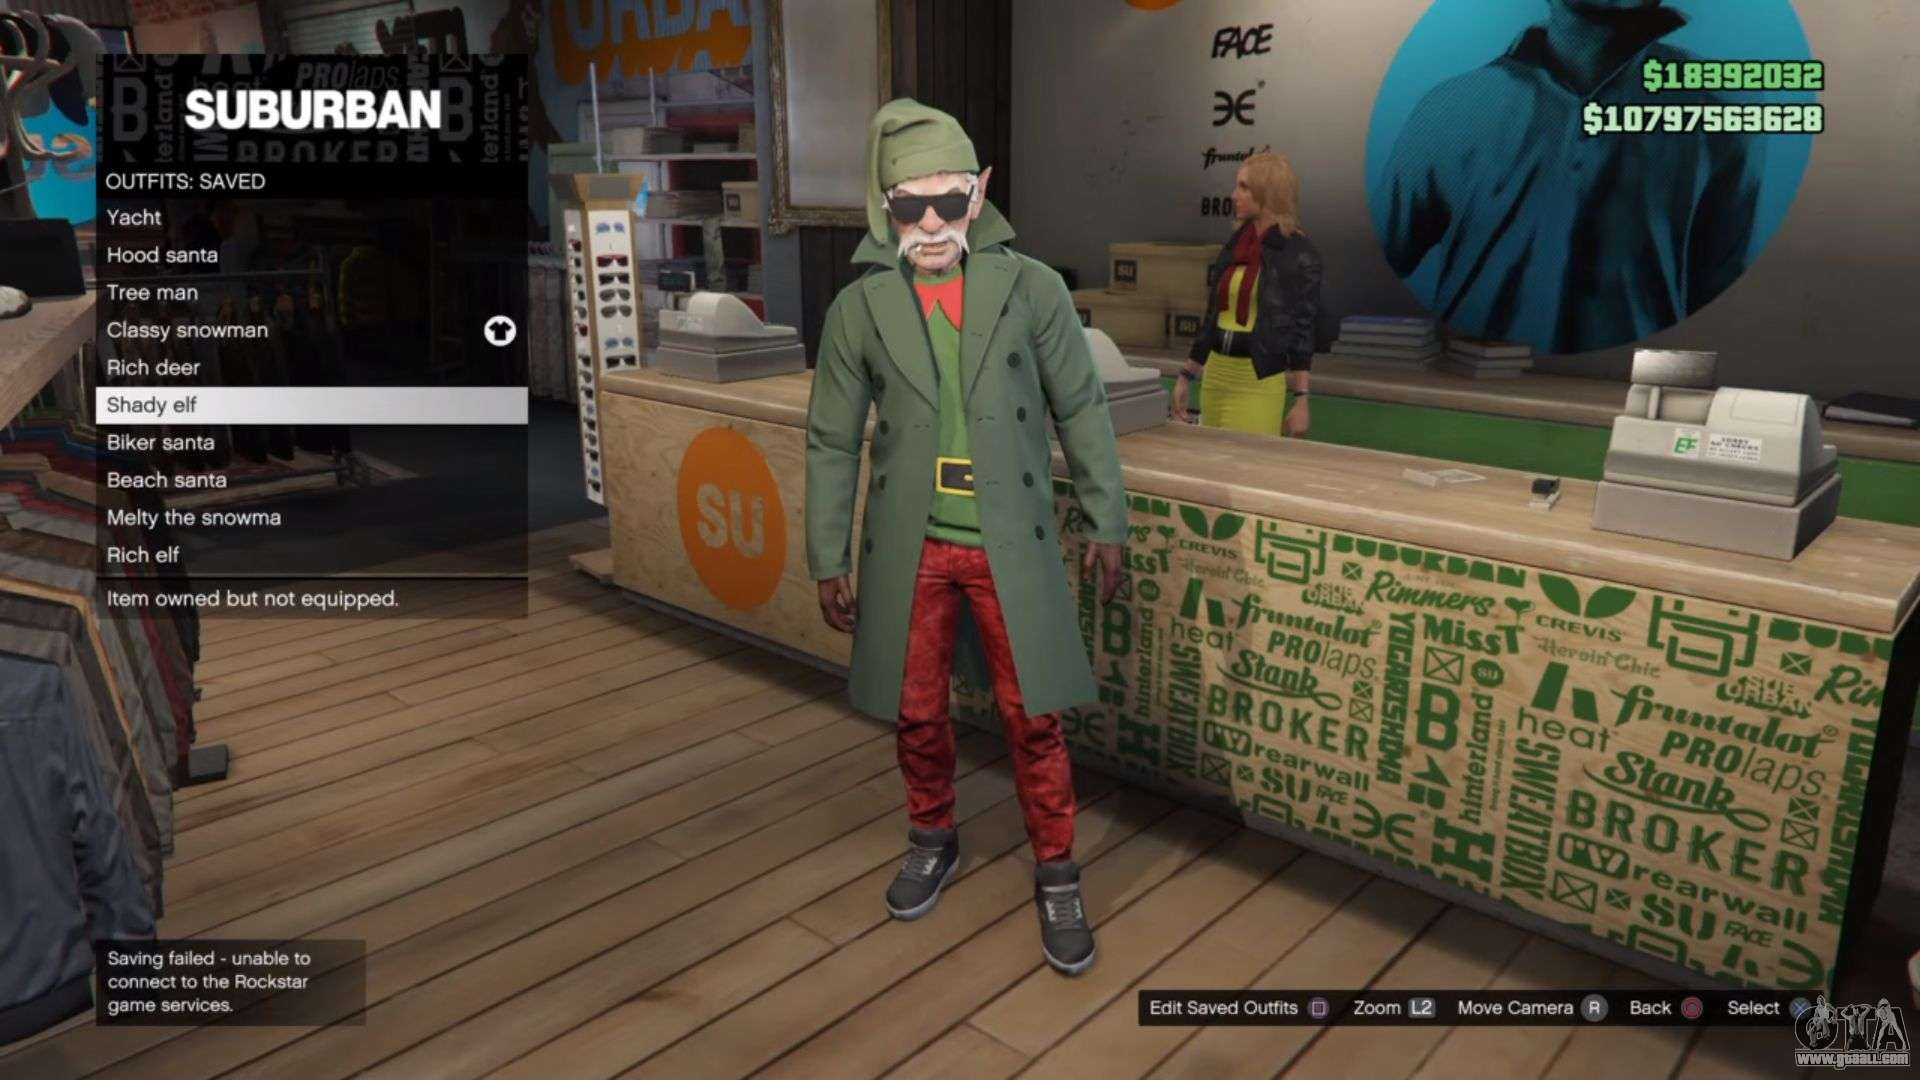 the sonic flare gamer s video festive costumes in gta online